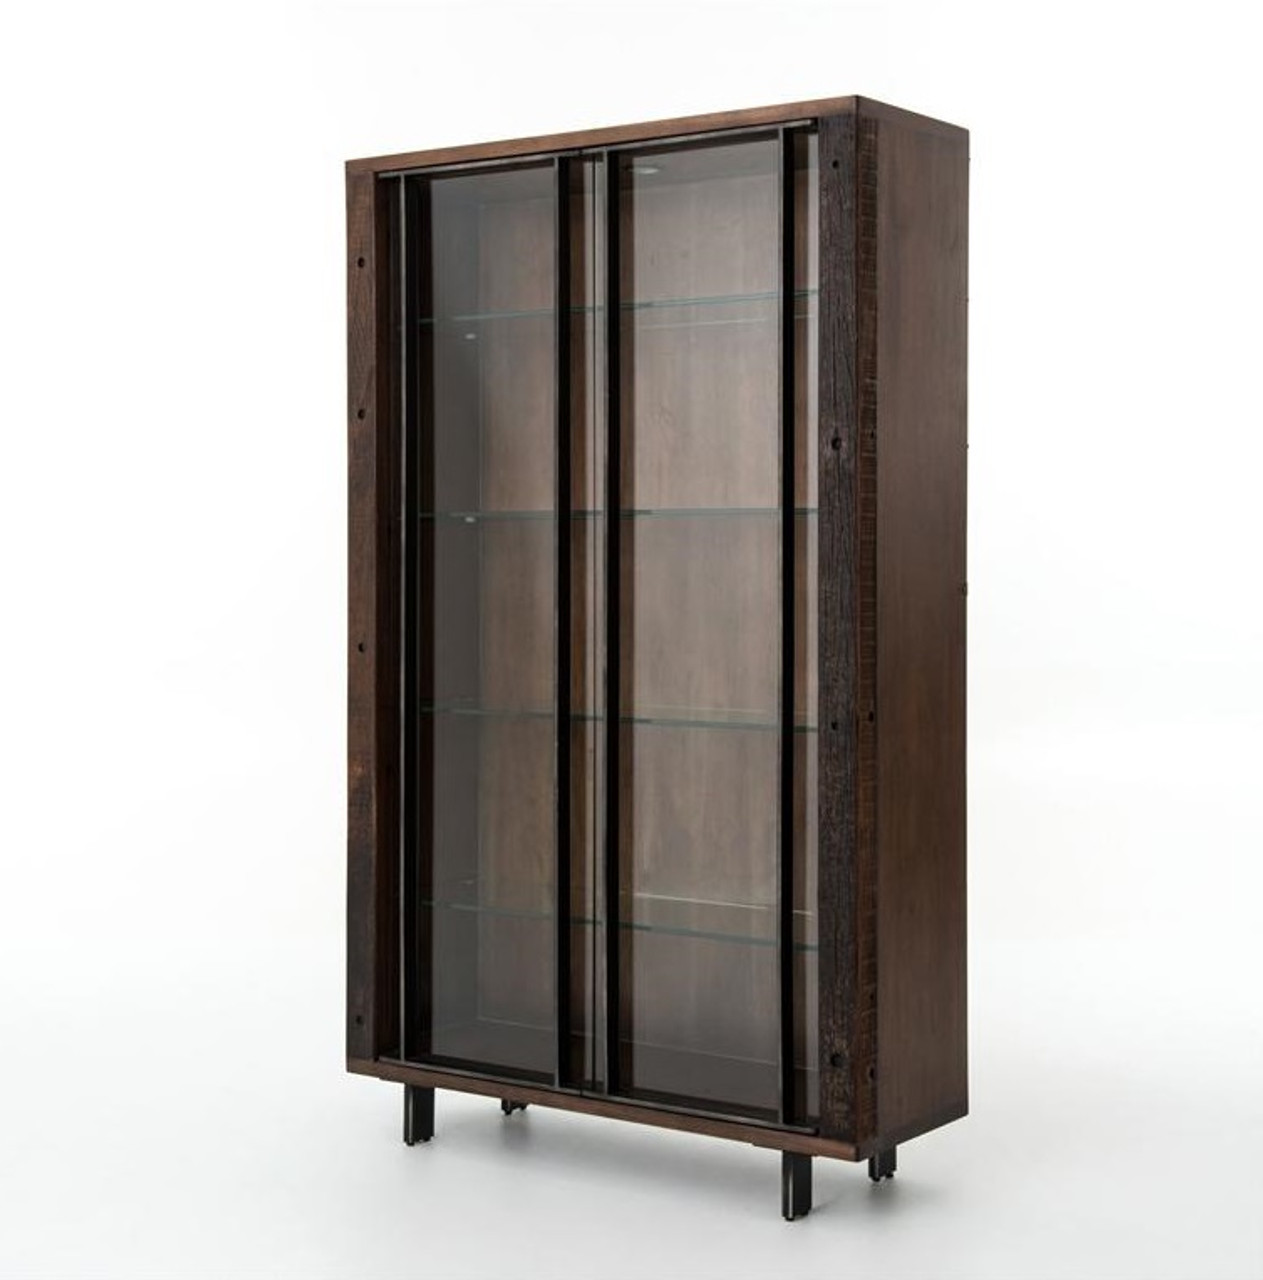 Geoff Reclaimed Wood Cabinet With Glass Doors